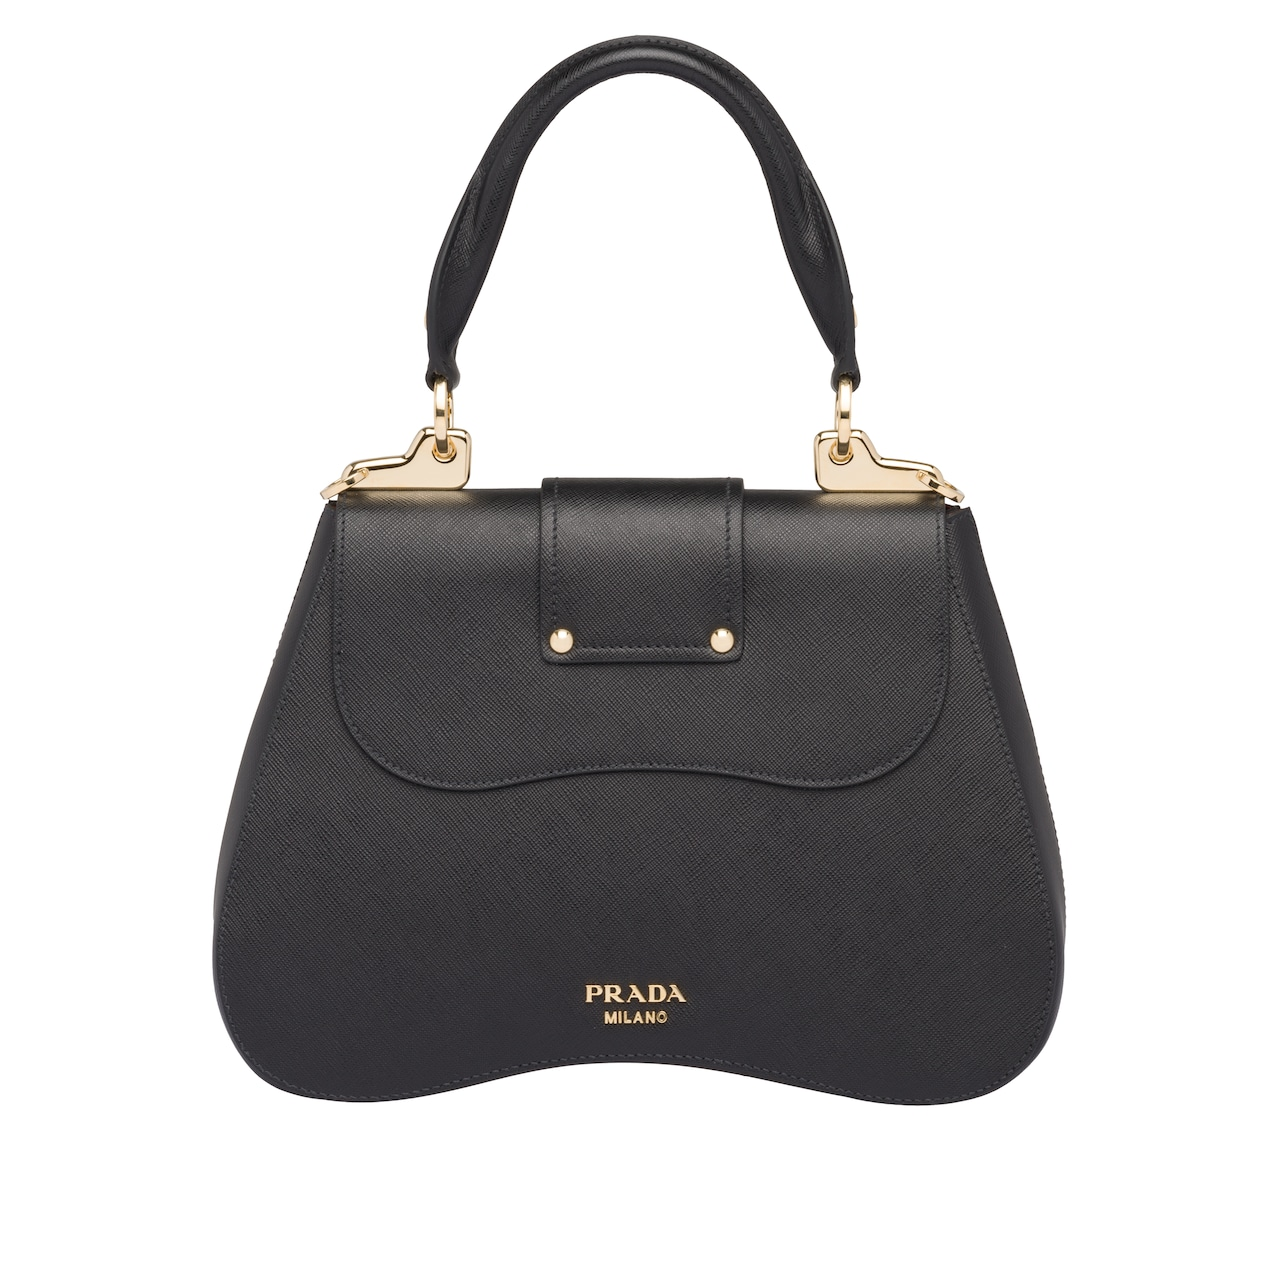 Prada Sidonie medium Saffiano bag